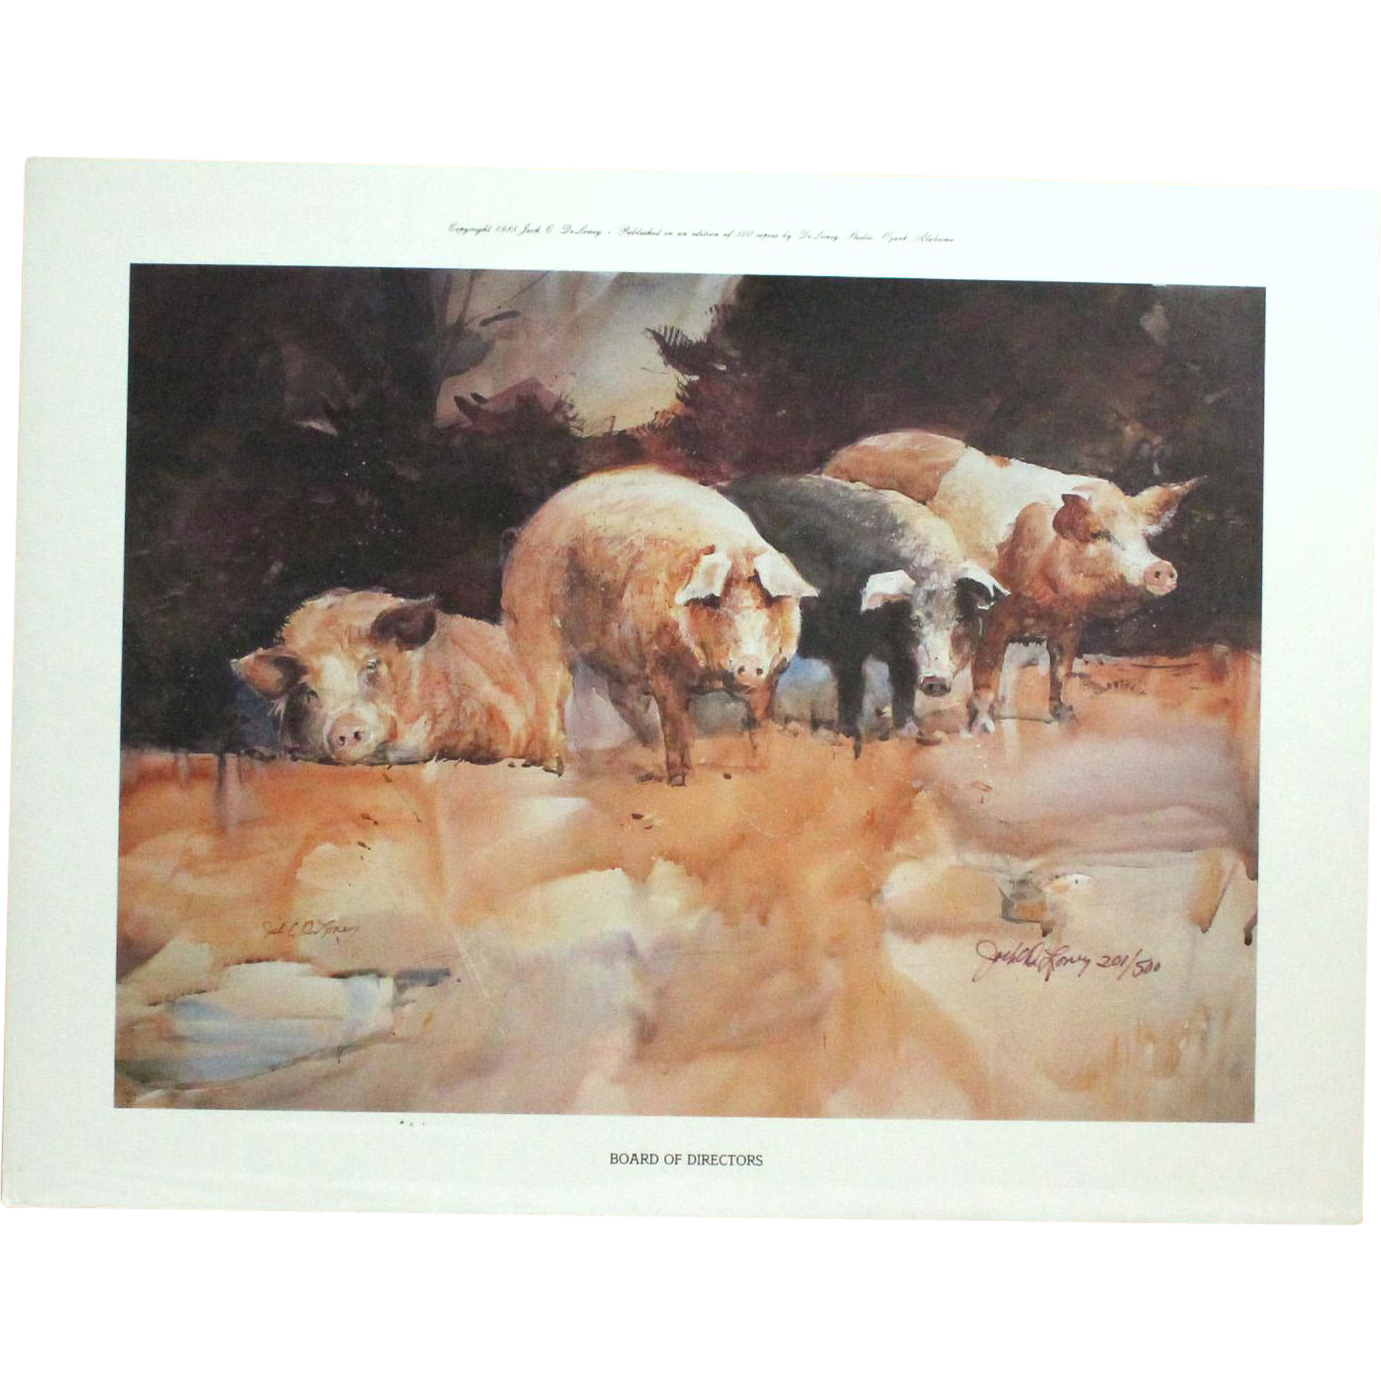 """50% OFF SALE: """"Board of Directors"""" by Jack Clouse DeLoney numbered print (201 of 500) 1985 Amusing pig art! (ART10001)"""